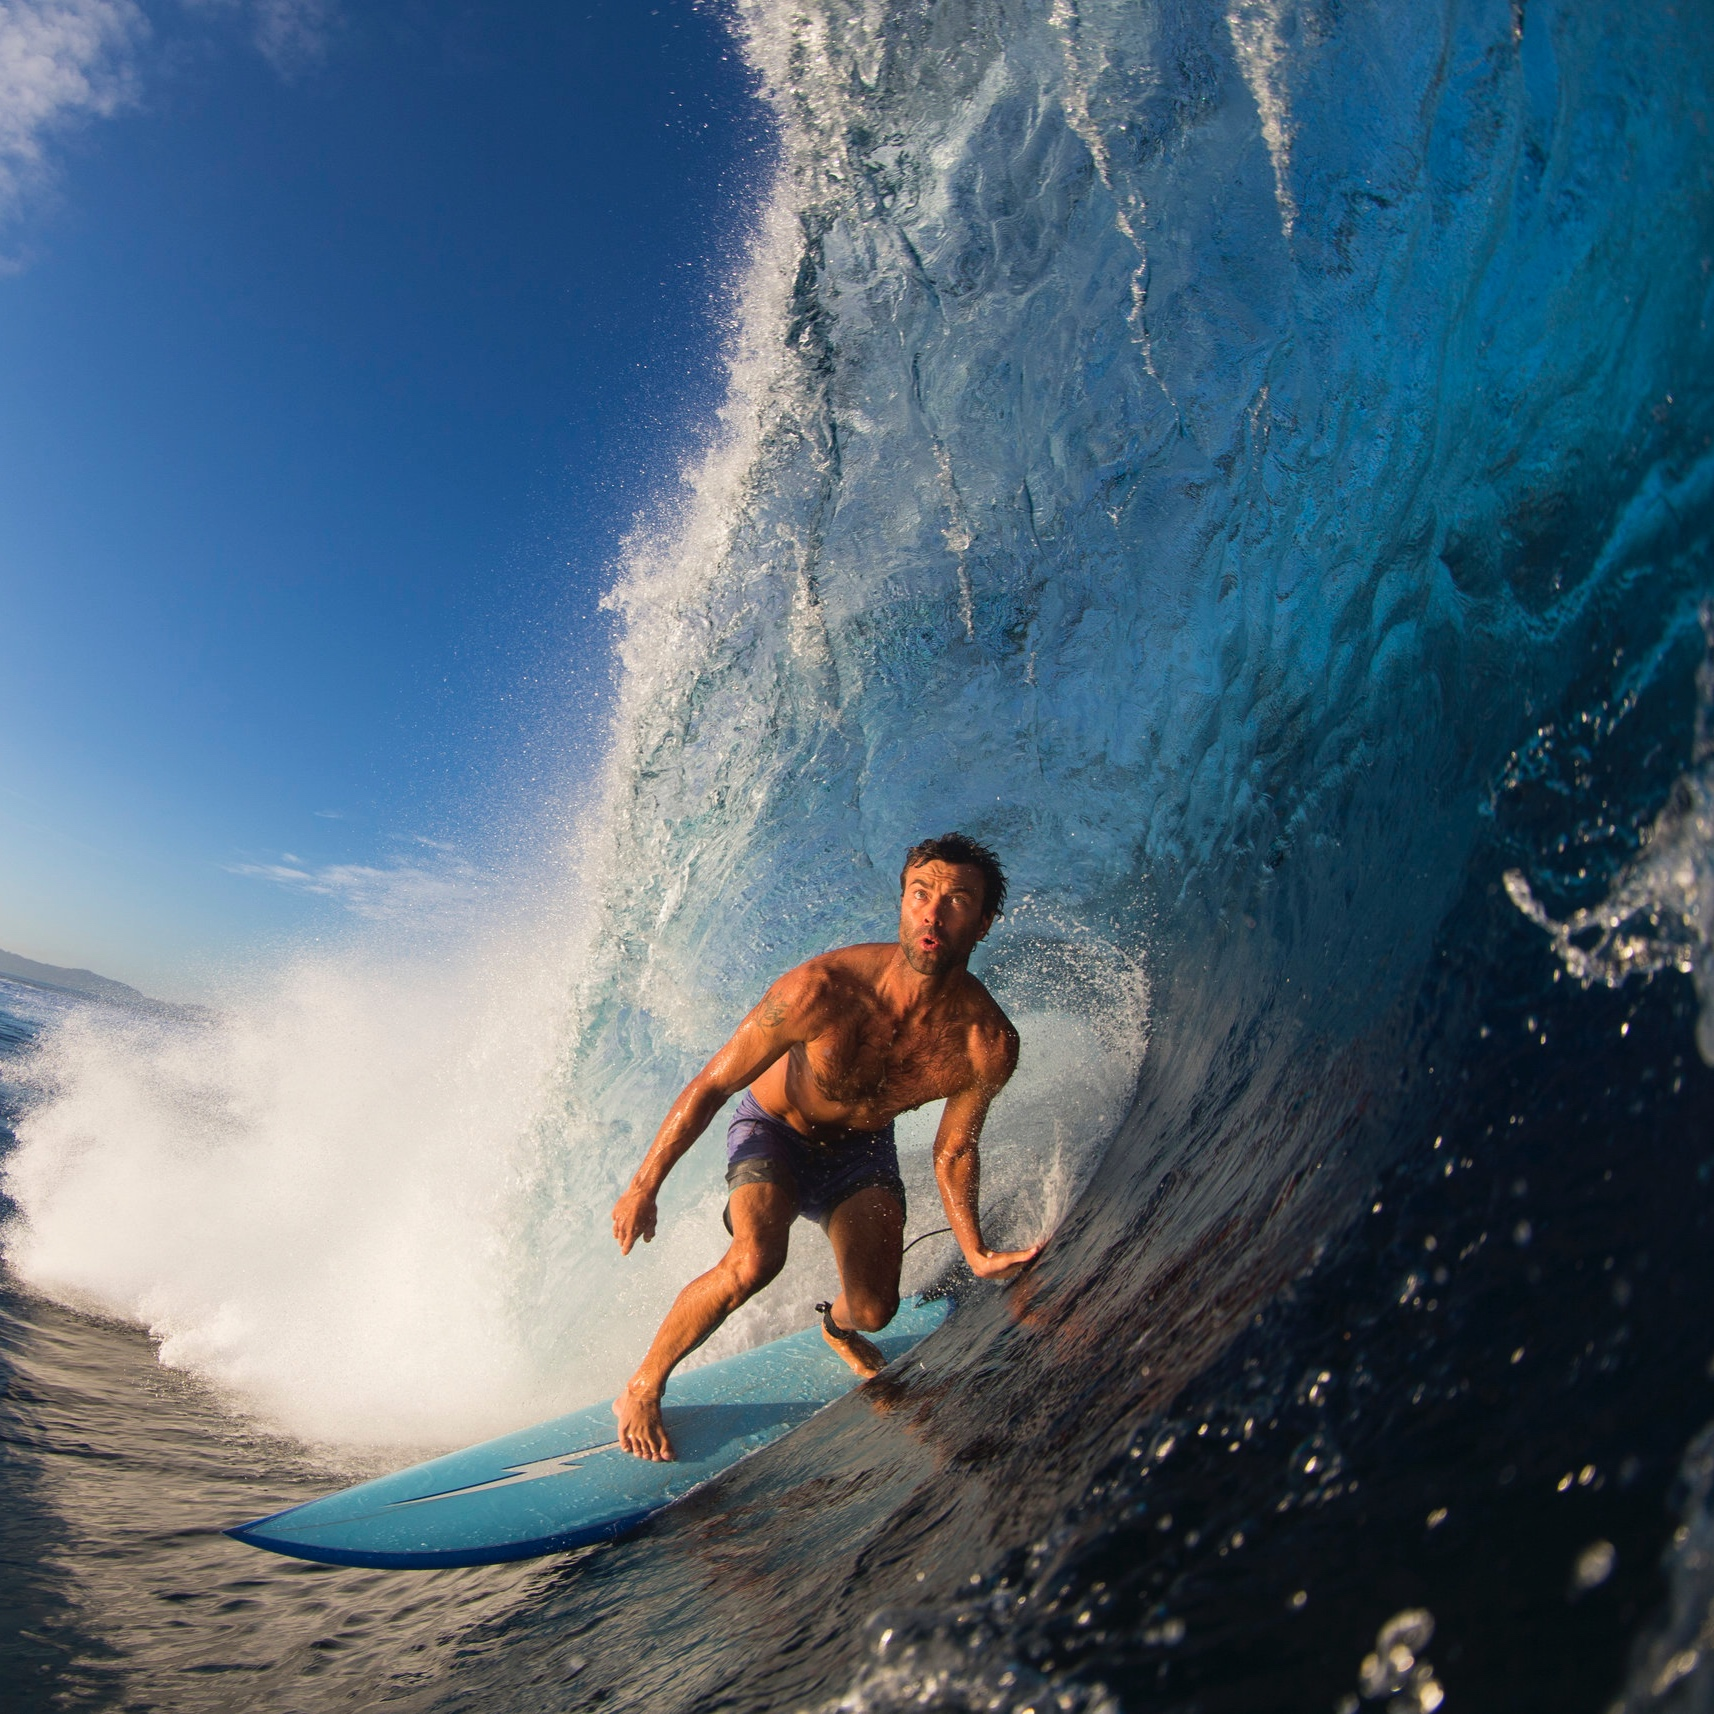 """Kohl Christensen - Kohl Christensen's life balances the search for the biggest waves with building and farming at home in Hawaii. """"Surfing big waves keeps me grounded,"""" Kohl says. As one of the leading players in the revival of paddle-in surfing in giant conditions, he spends much of his time tracking swells and testing new board designs. Kohl is relatively new to kitesurfing but has taken to it like a duck to water, fast becoming one of the smoothest and most natural kiters in the lineup. While big waves will always be his first calling, kitesurfing has opened up a new world of possibilities. When it's both flat and calm you might find Kohl tending his off-the-grid farm or installing solar systems around Oahu. When the waves are pumping he'll be paddling into the biggest waves he can find."""